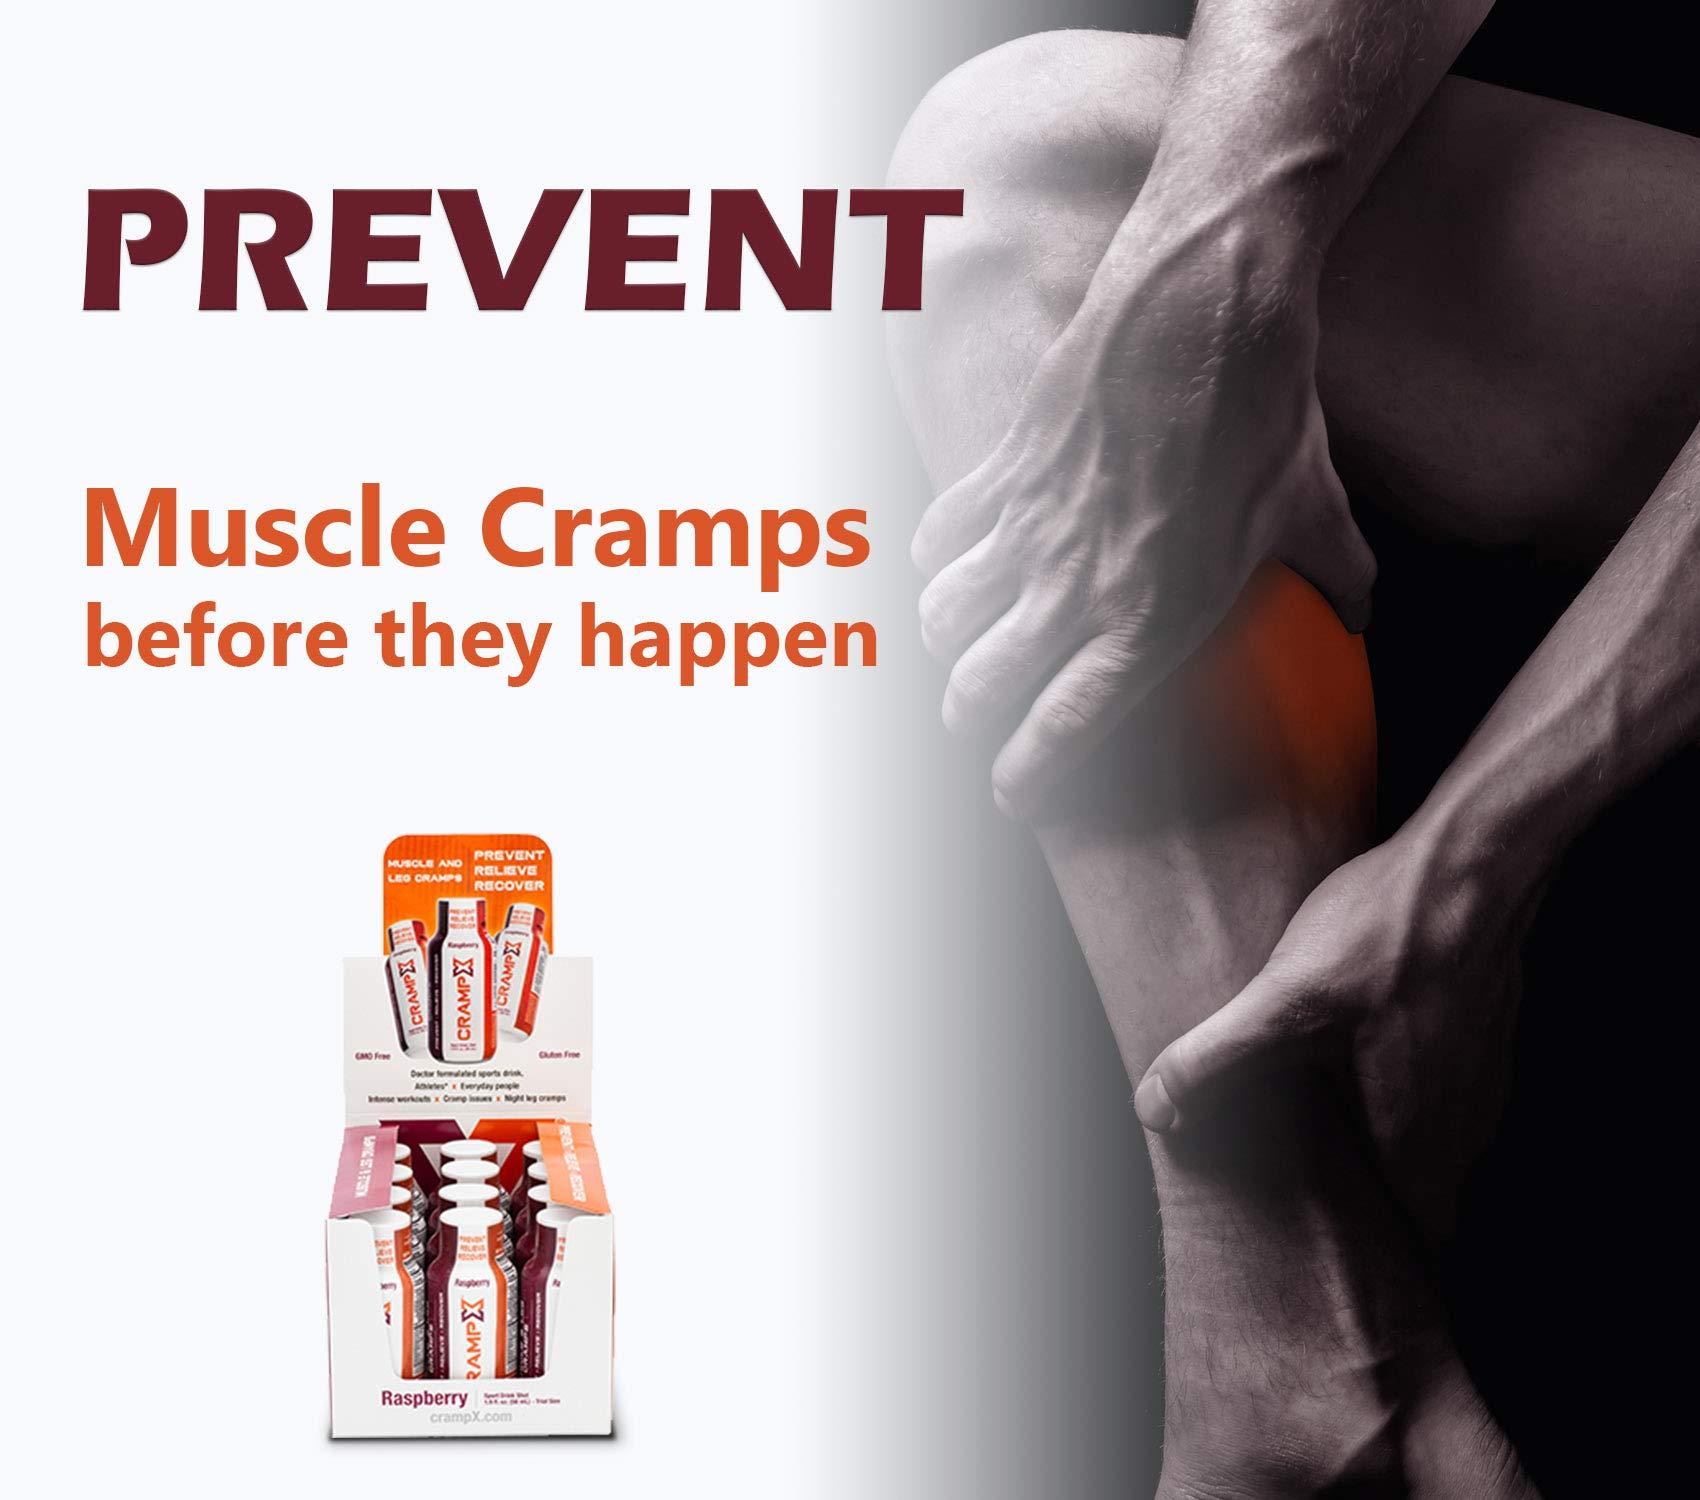 CrampX Muscle Cramp Relief Drink | Proven to Prevent and Treat Muscle Cramps in Seconds | Gluten Free Cramp Remedy for Hand Cramps, Leg Cramps, Foot Cramps | Raspberry 2 oz - Pack of 12 by CrampX (Image #3)